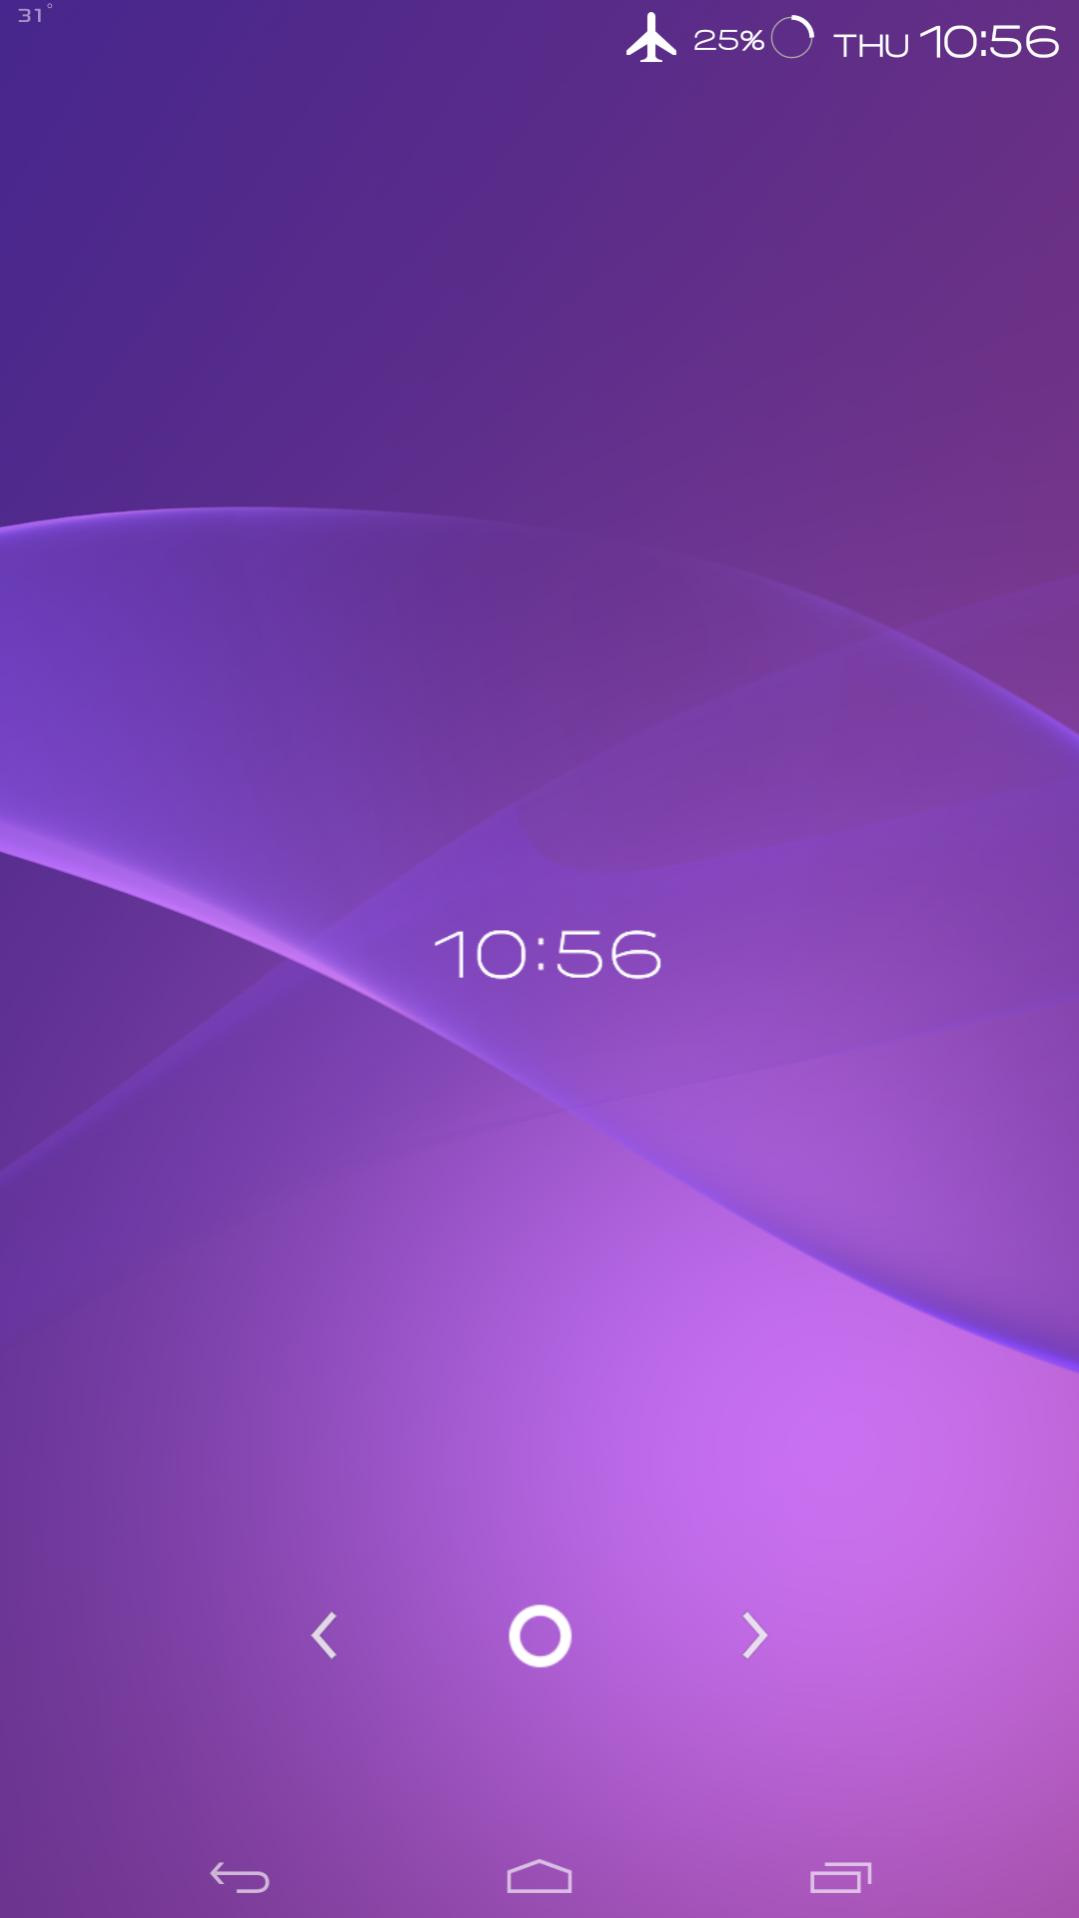 Sony Xperia Wallpaper Free Download